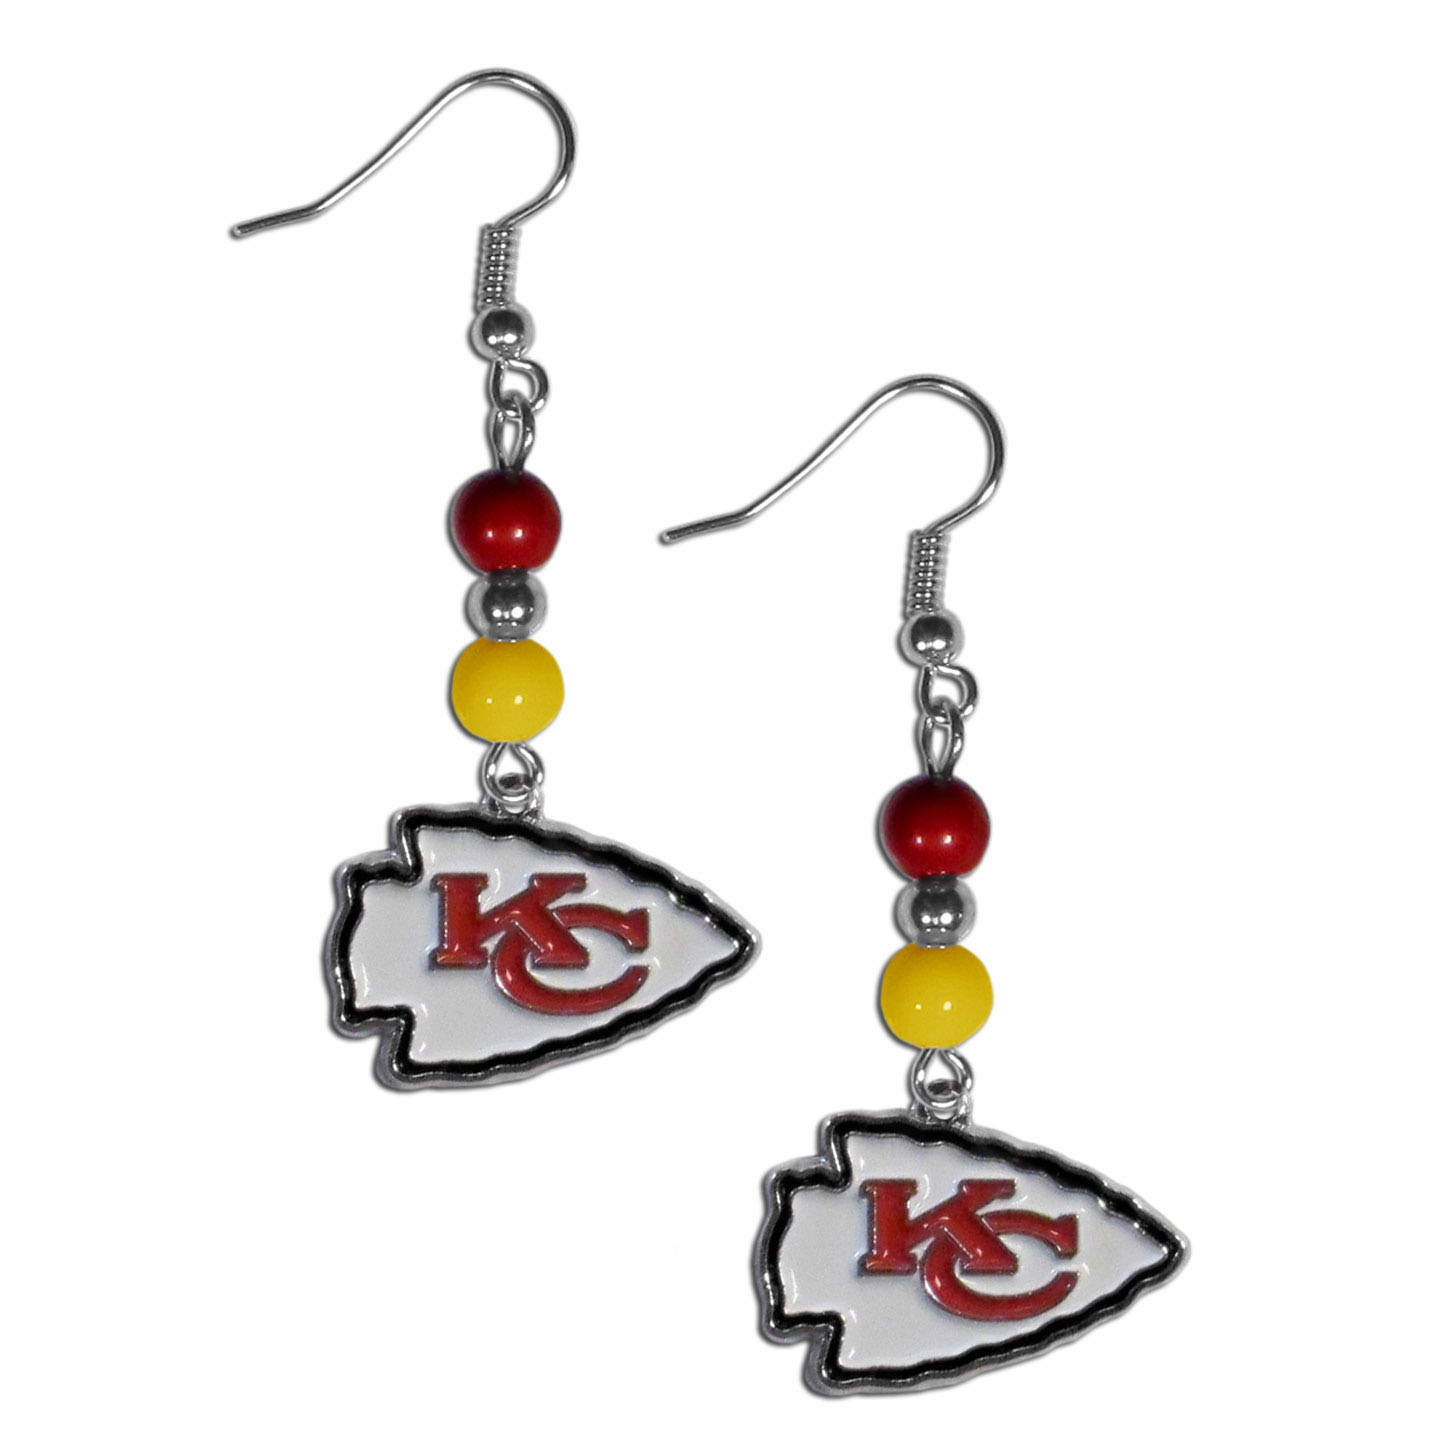 Kansas City Chiefs Fan Bead Dangle Earrings - Love your team, show it off with our Kansas City Chiefs bead dangle earrings! These super cute earrings hang approximately 2 inches and features 2 team colored beads and a high polish team charm. A must have for game day!